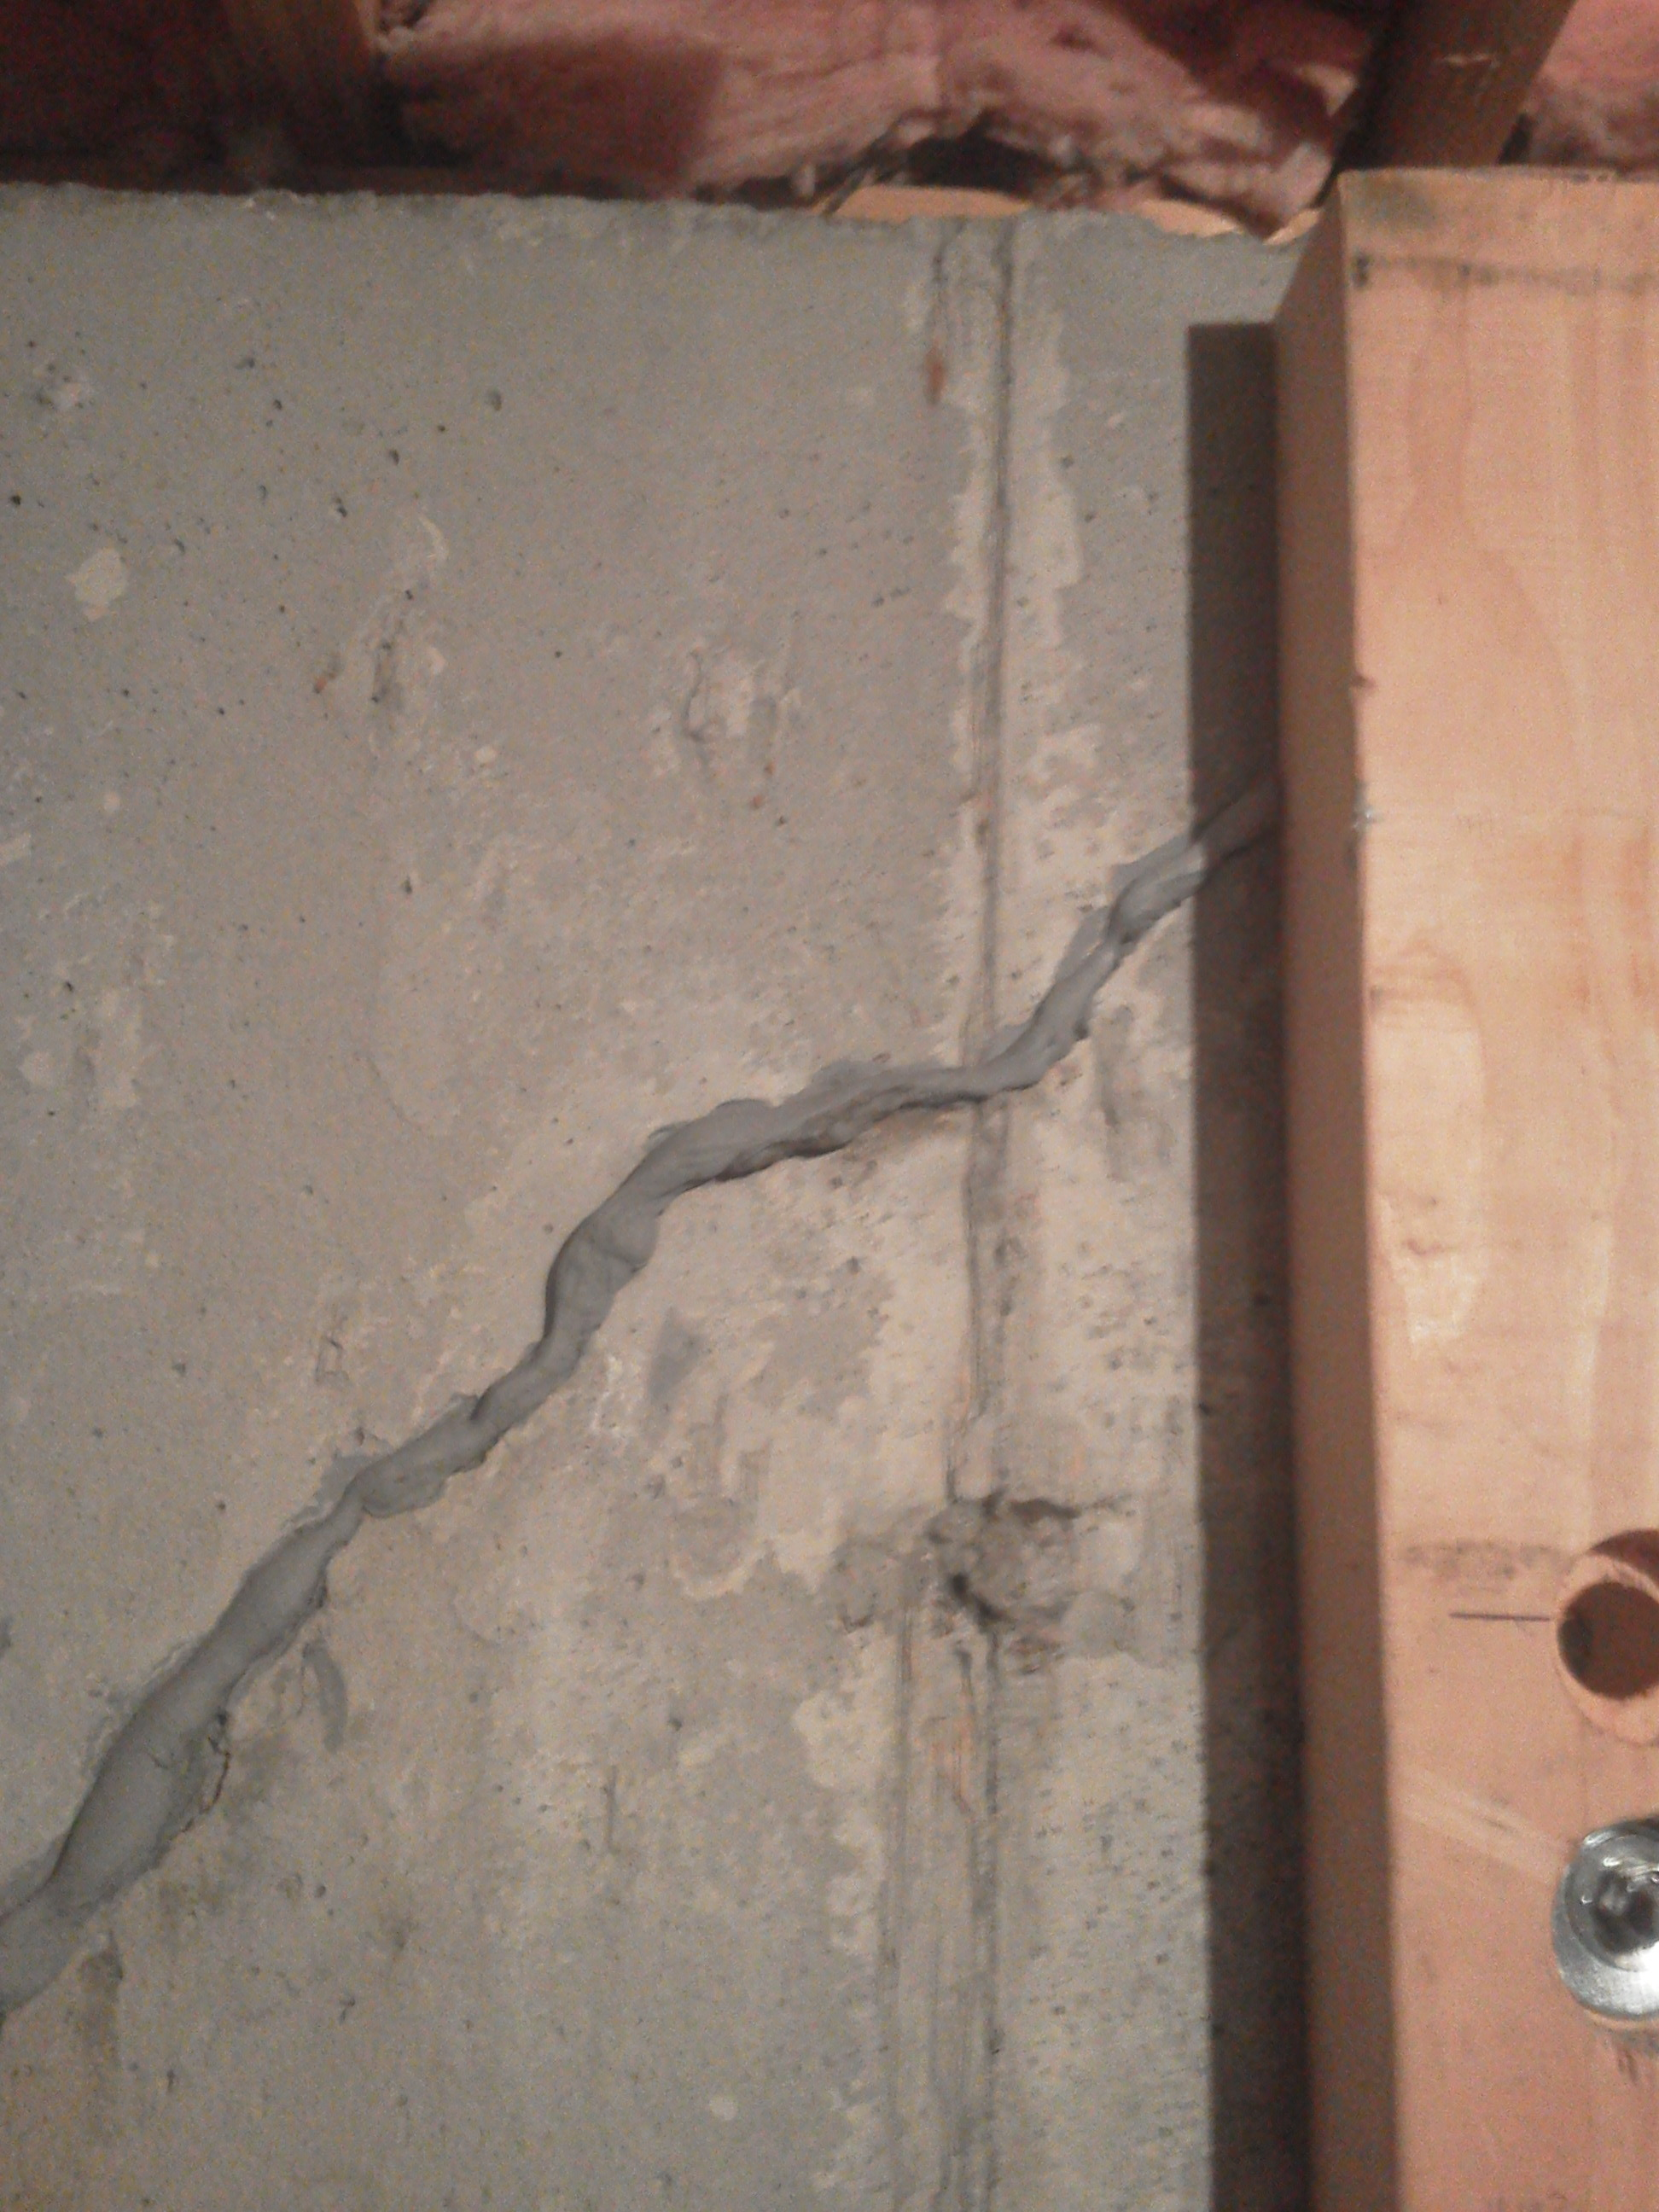 Wall pull crack repair AFTER